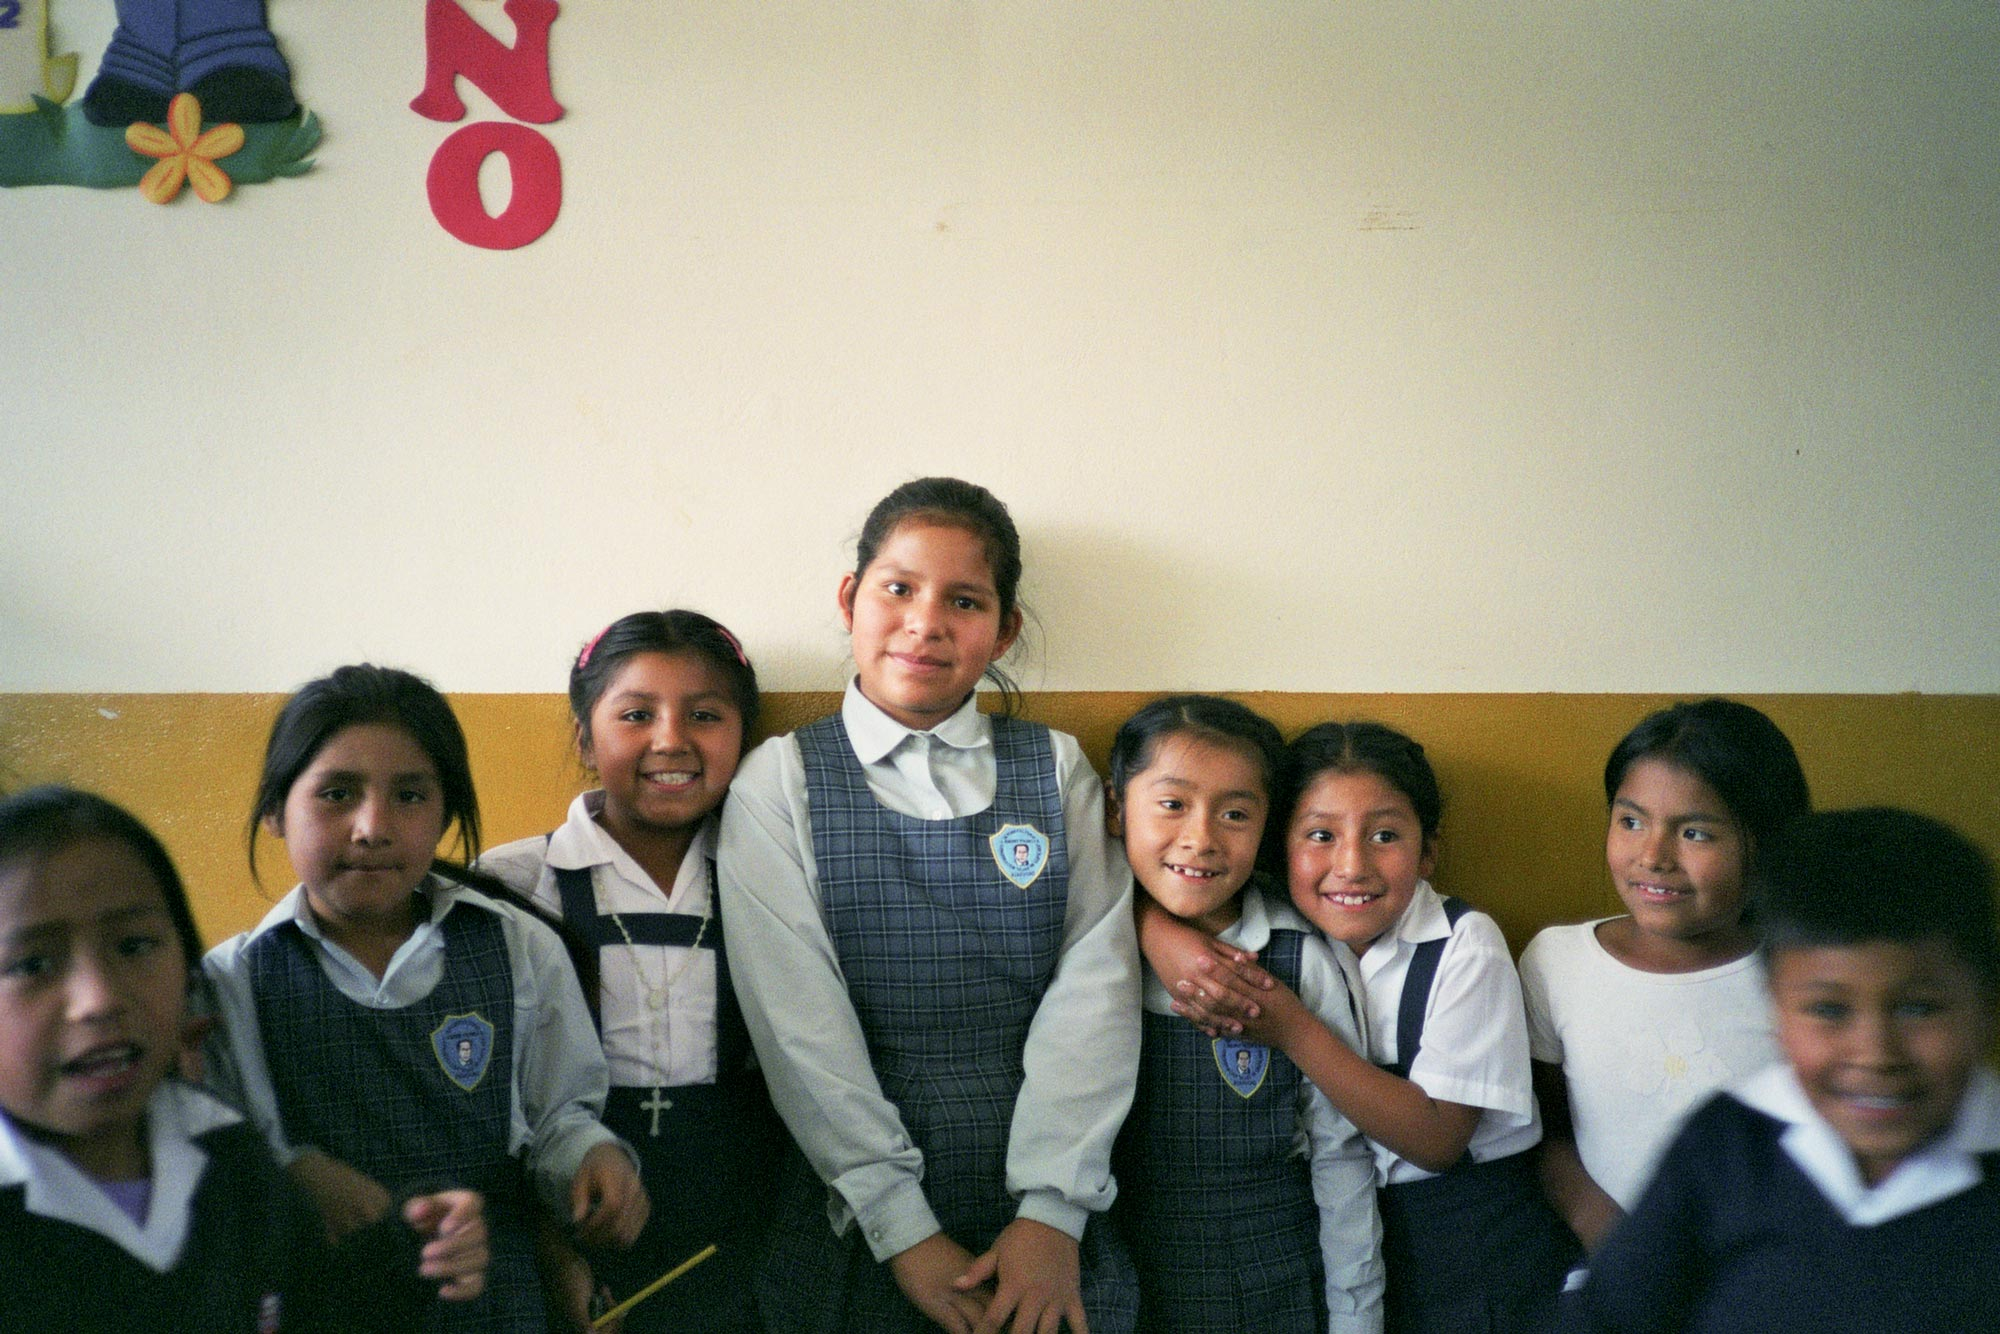 Peru Ayacucho Puericultorio school girls group